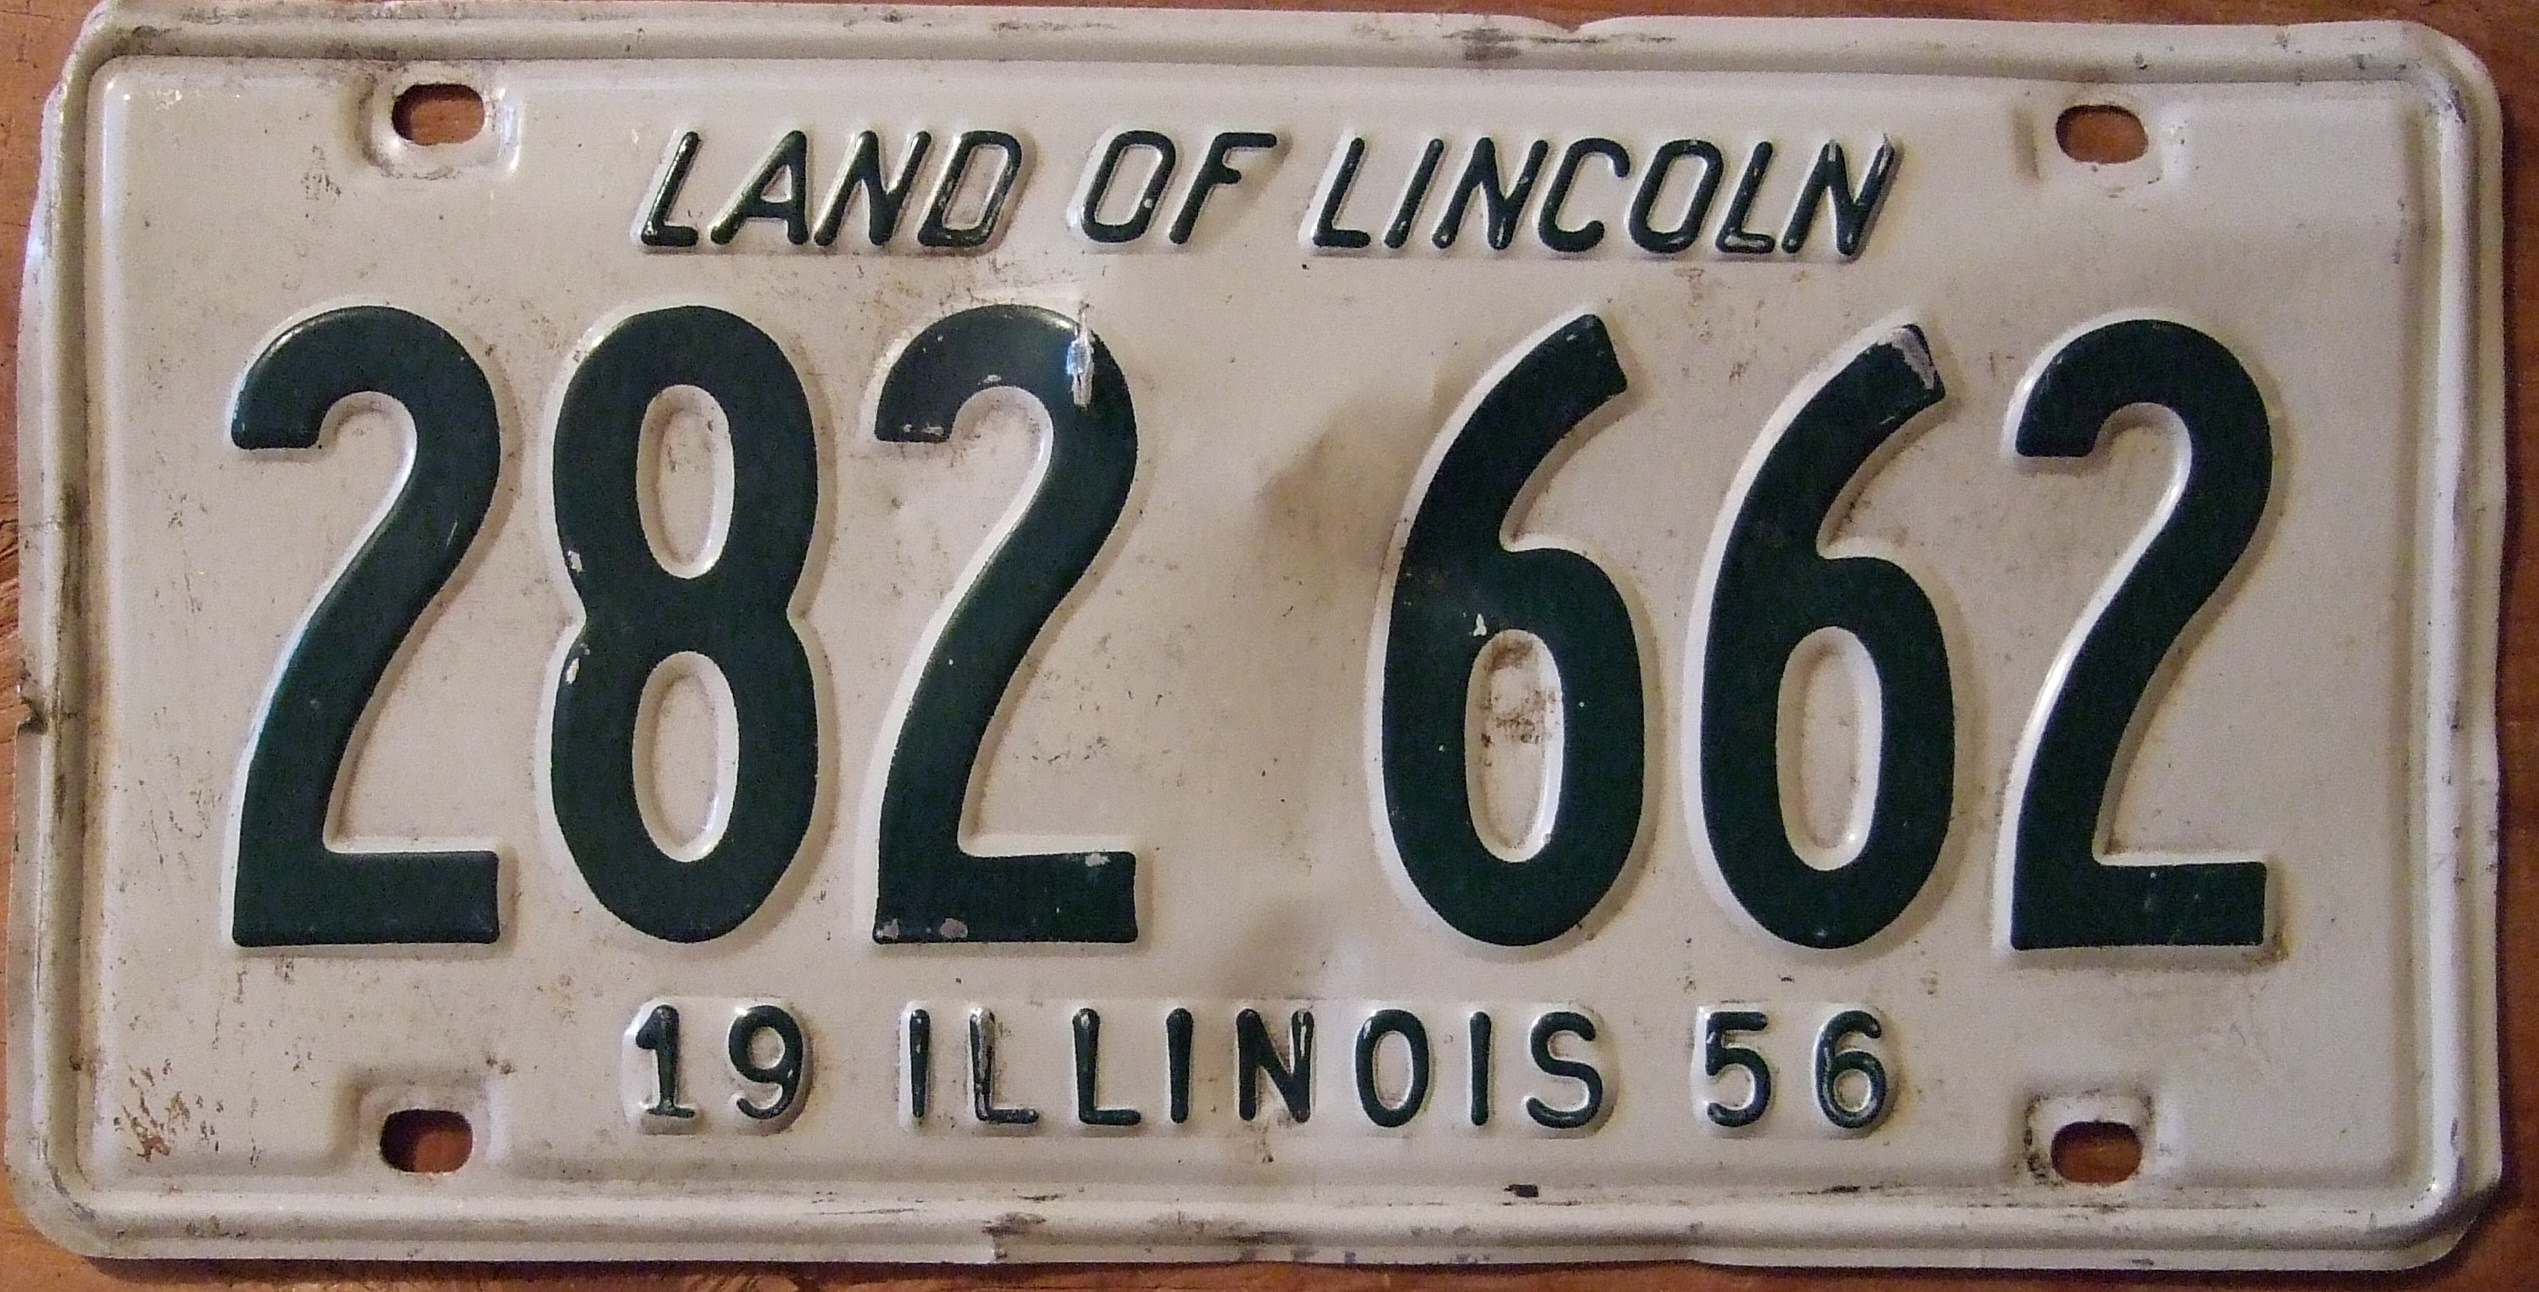 File:ILLINOIS 1956 LICENSE PLATE 282-662 - Flickr - woody1778a.jpg